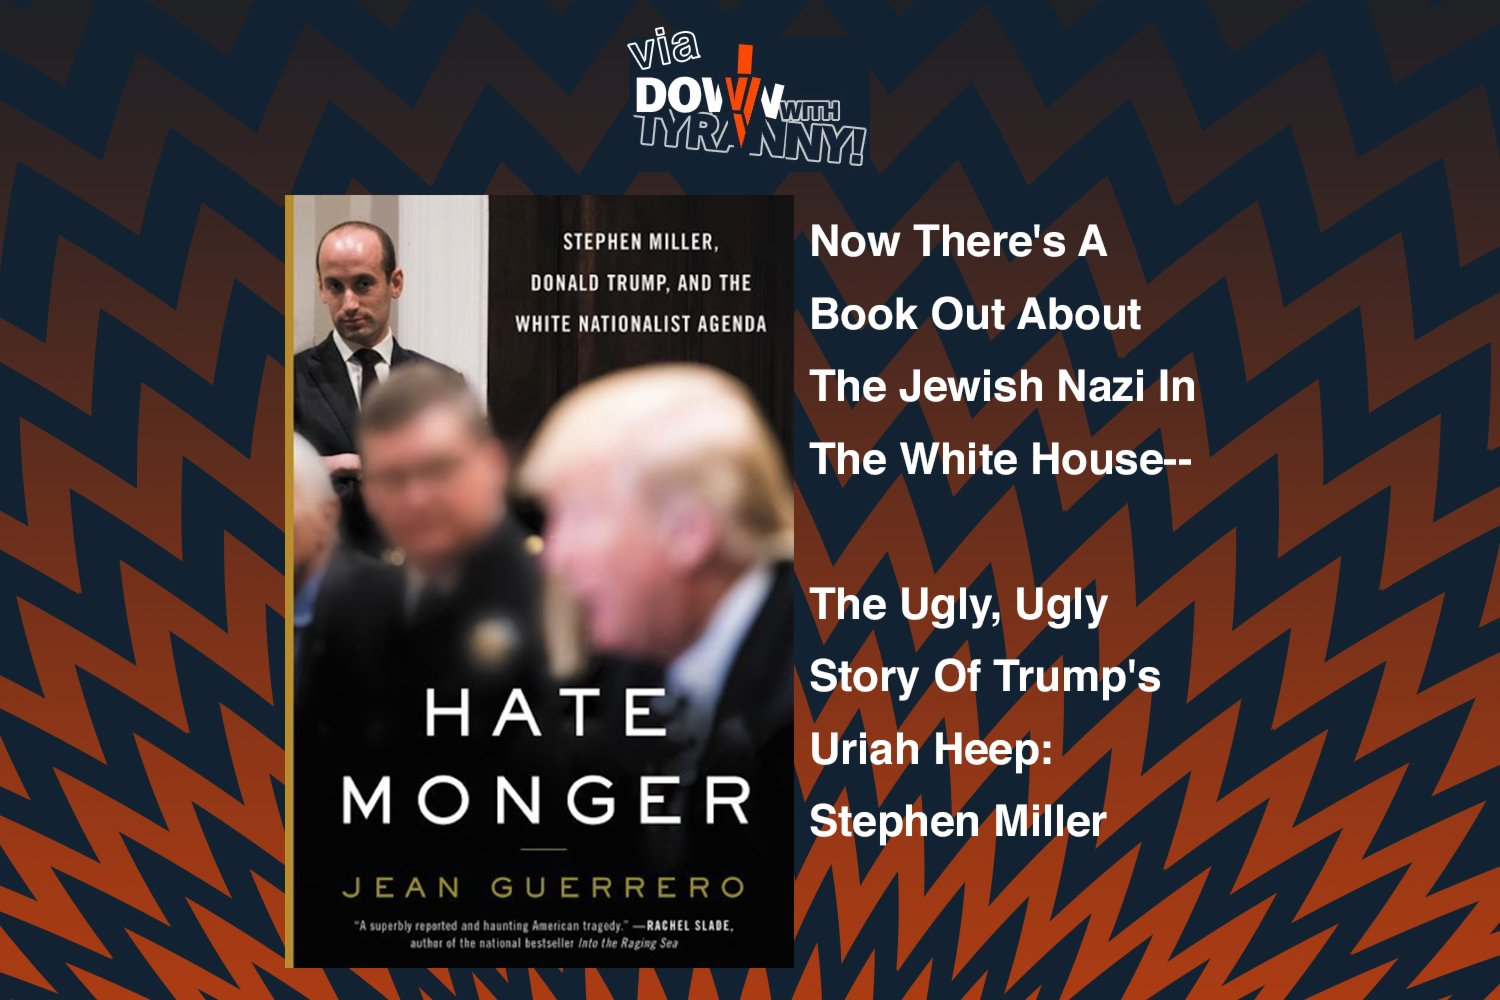 Via Down With Tyranny Now There S A Book Out About The Jewish Nazi In The White House The Ugly Ugly Story Of Trump S Uriah Heep Stephen Miller Frank Schaeffer Official Blog